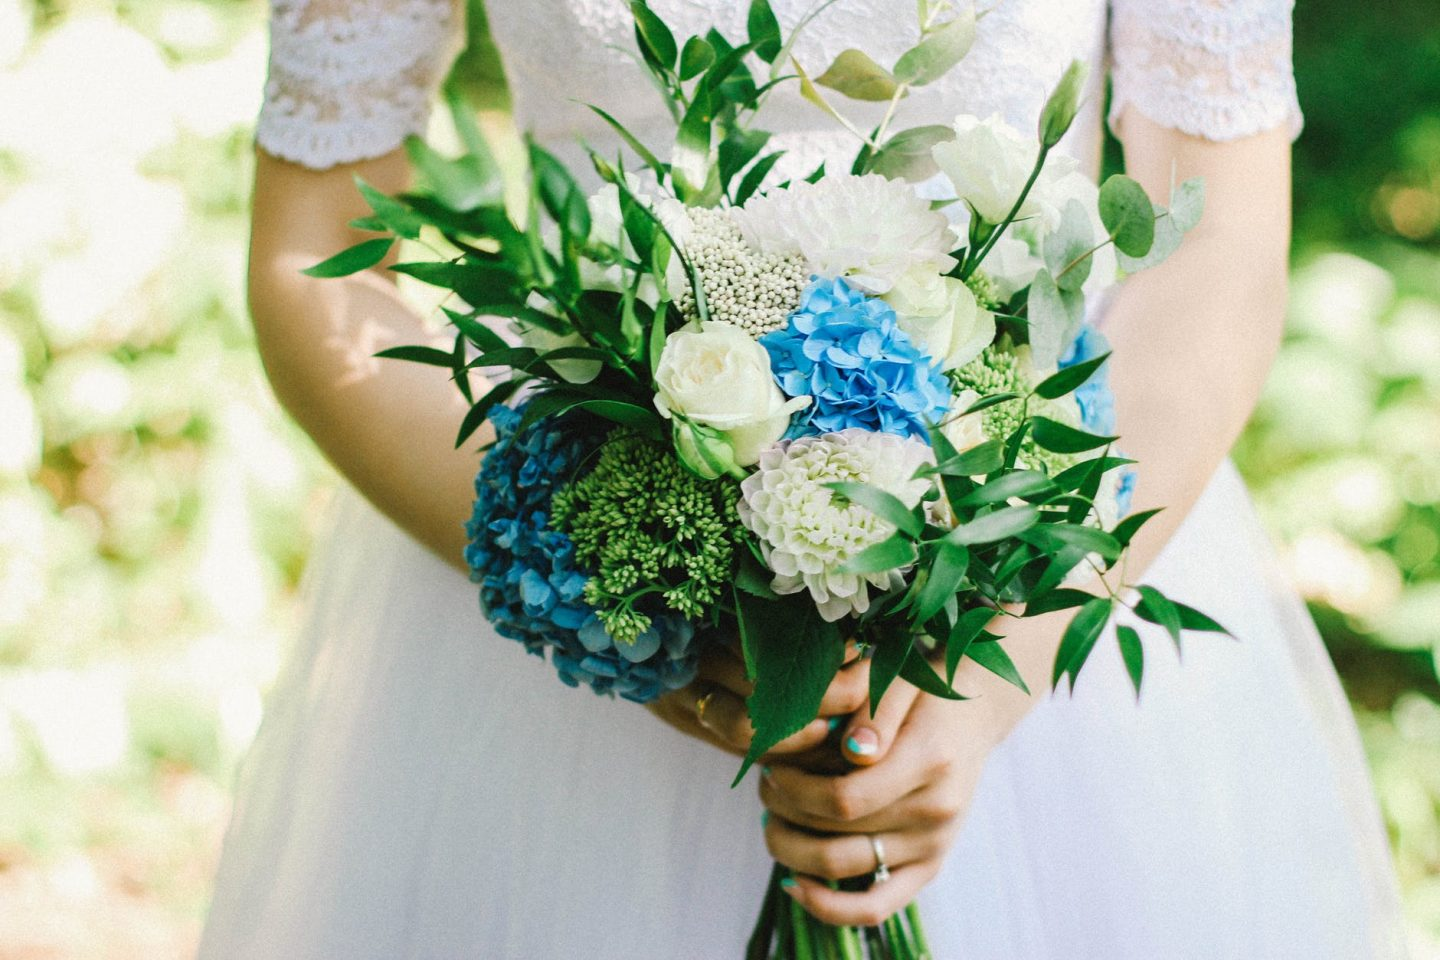 blue and white bouquet being held by a bride in a white dress: springtime wedding.